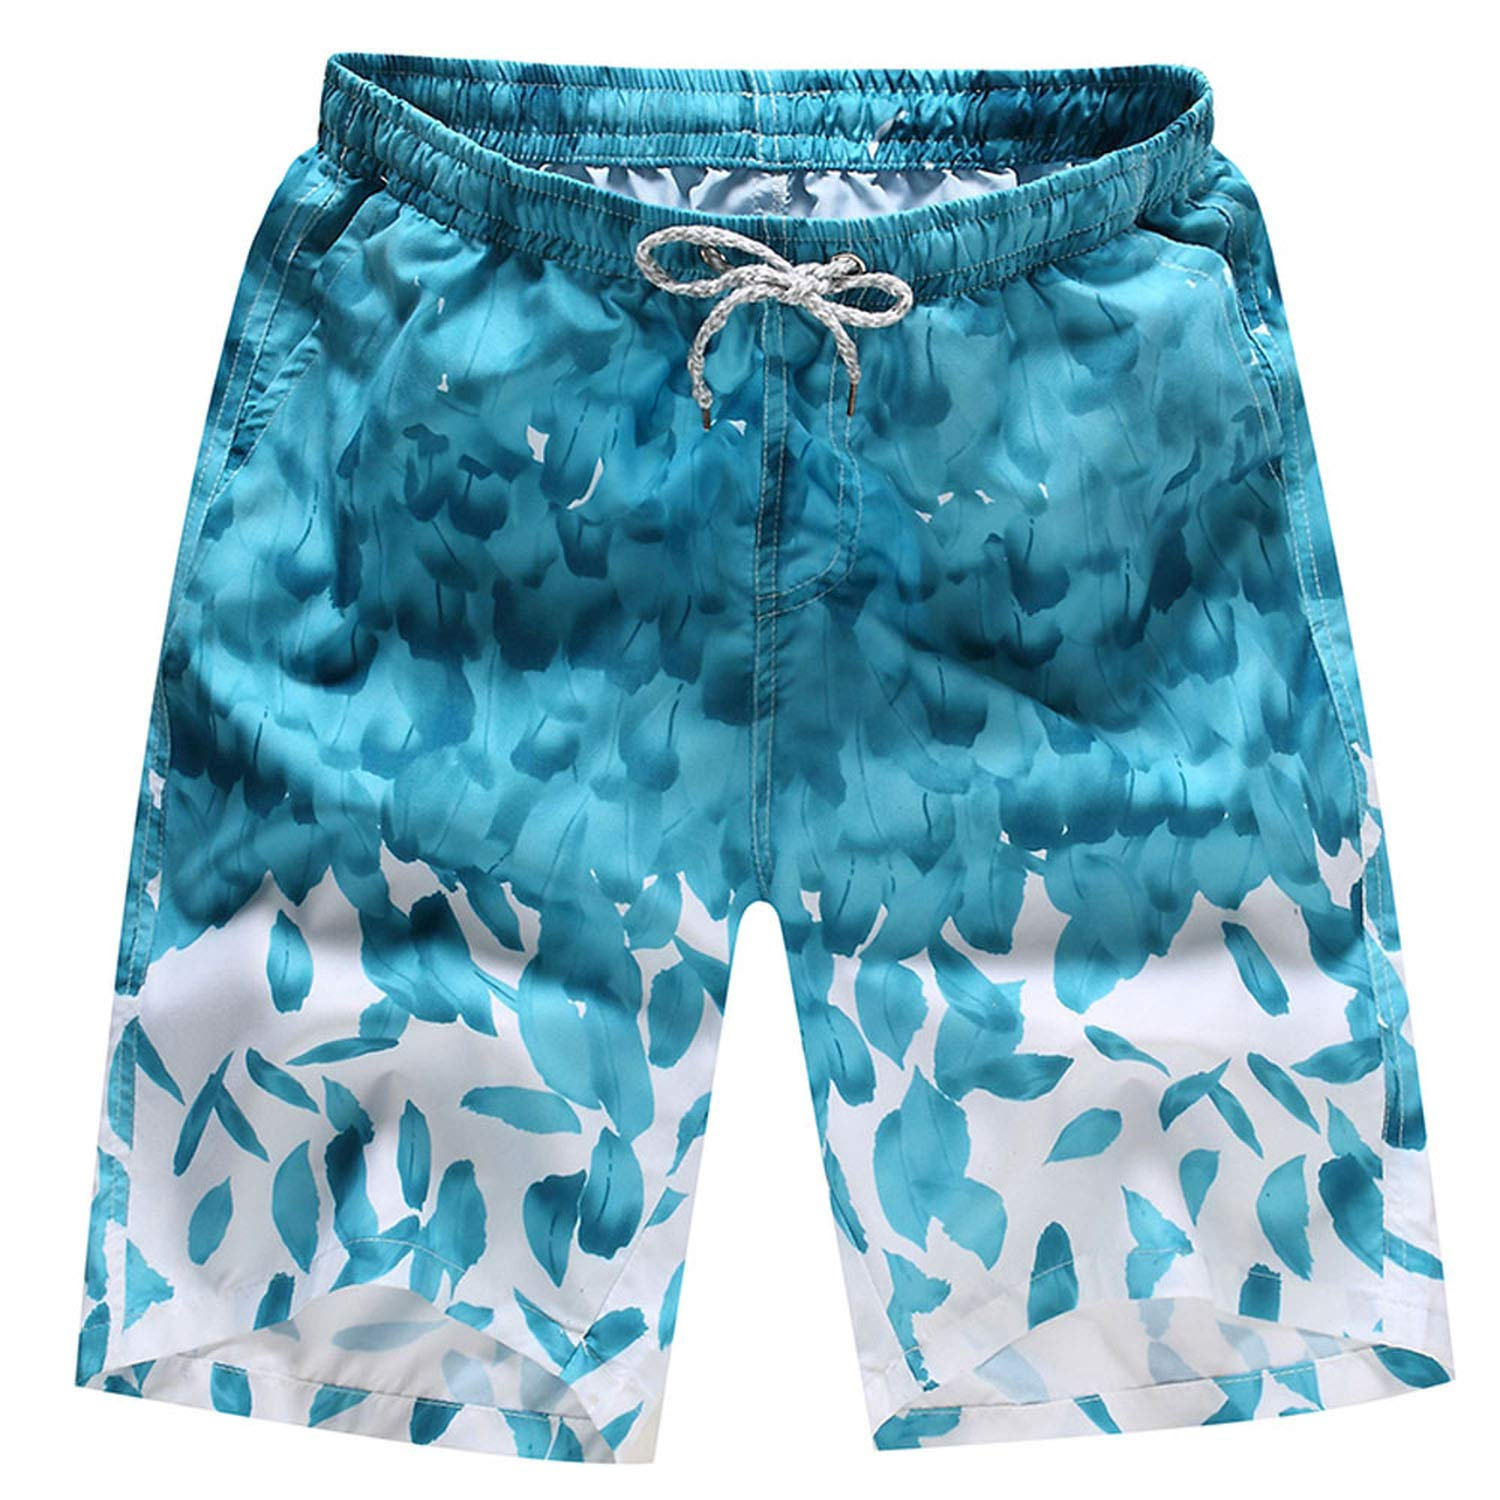 Big Hit Summer Breathable Mens Board Shorts Trunks Beach Board Shorts Swimming Shorts